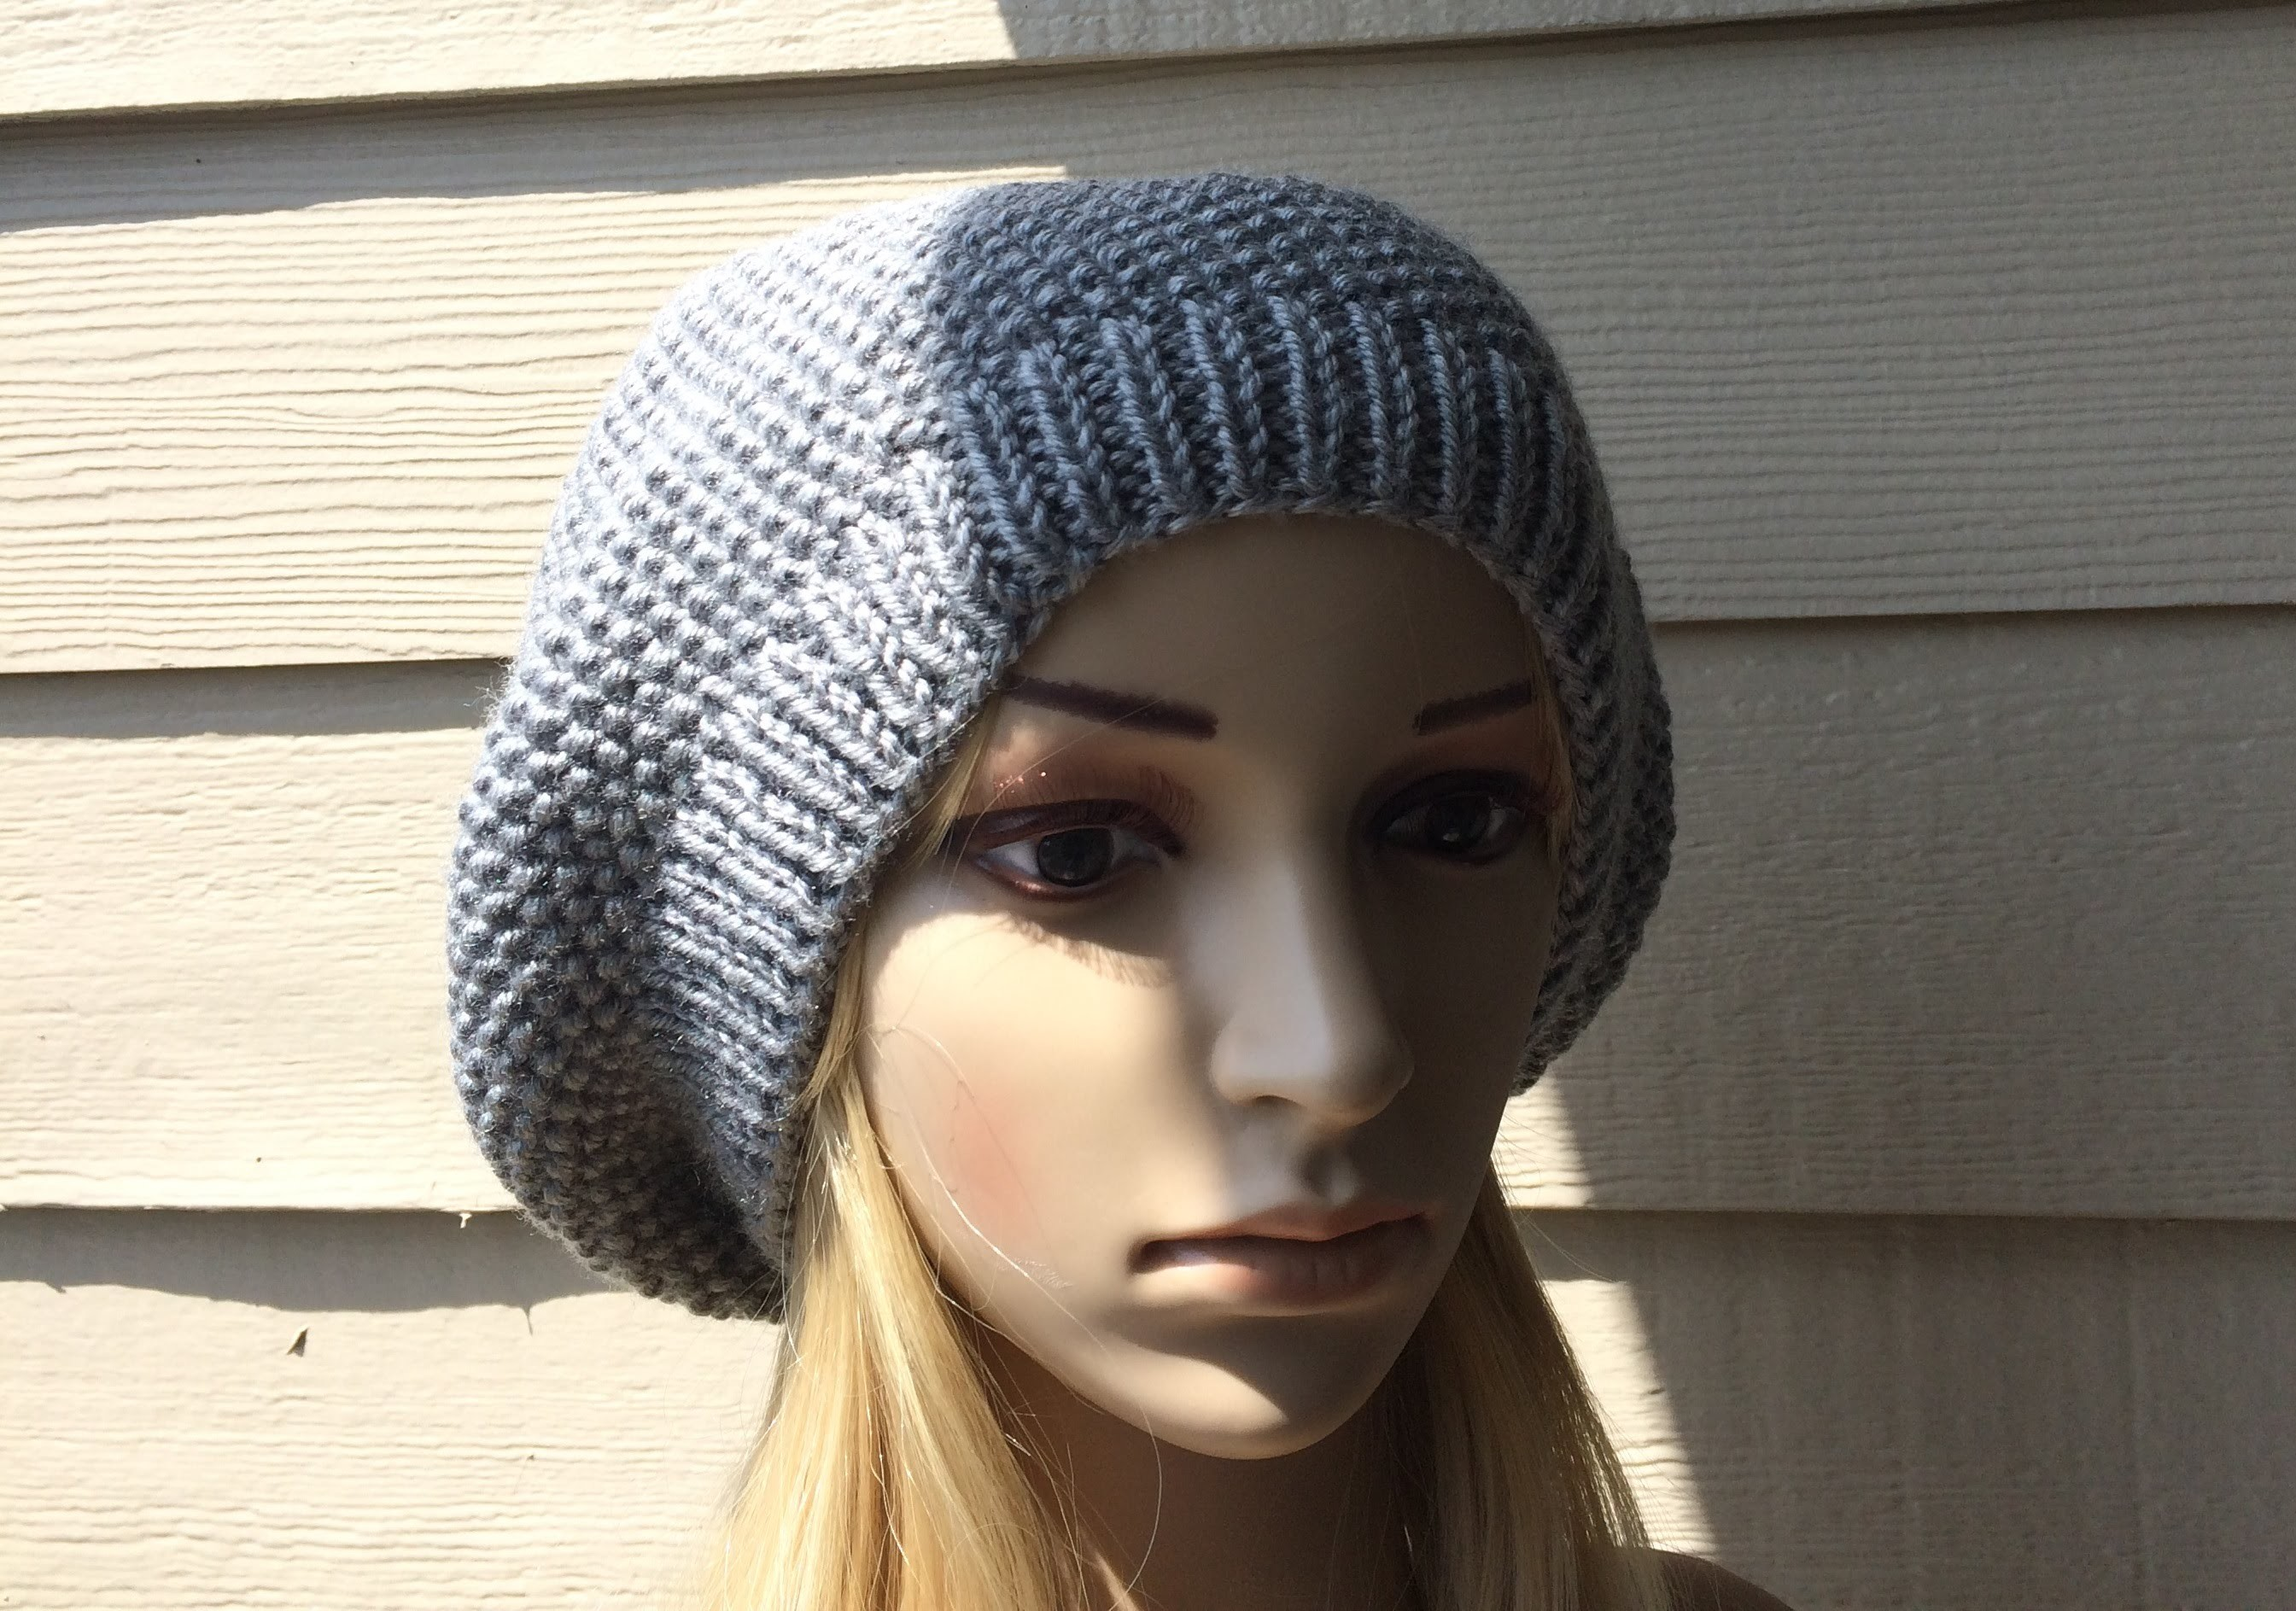 How To Knit A Slouchy Hat, Lilu's Knitting Corner video # 3